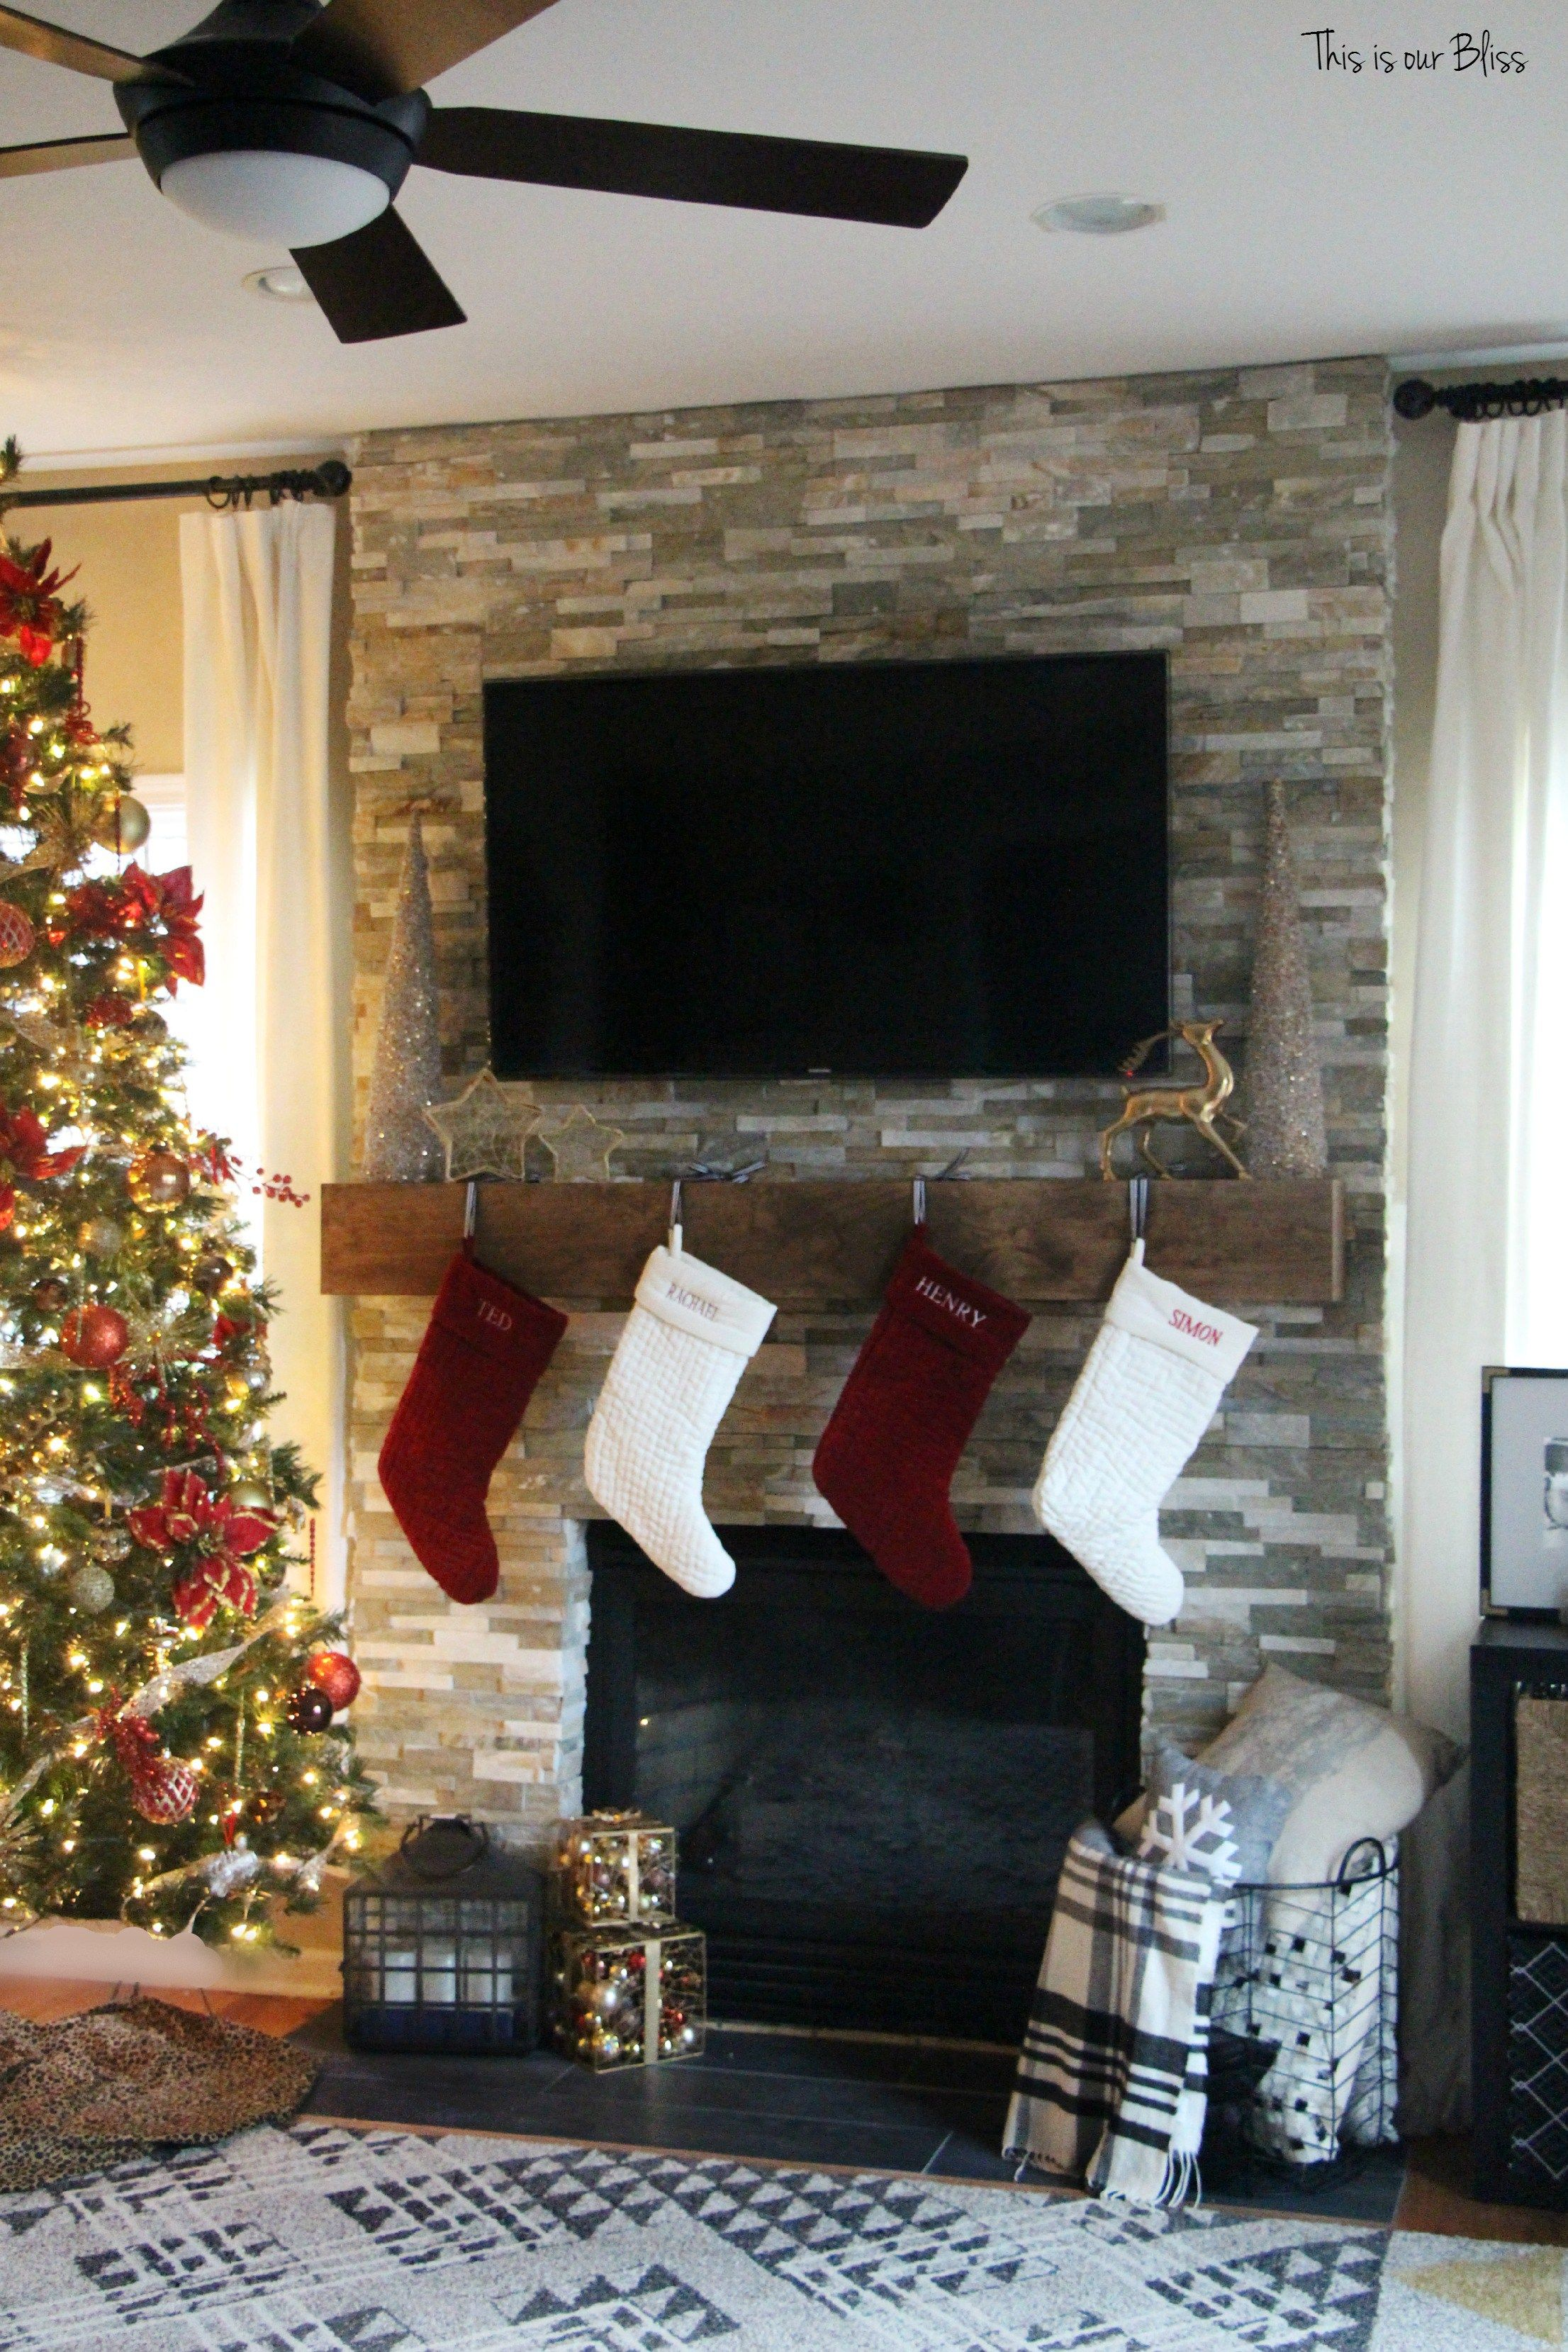 Photo of Merry, Bright & Blissful Holiday Home | Family Room + [more of the new] Mantel – This is our Bliss